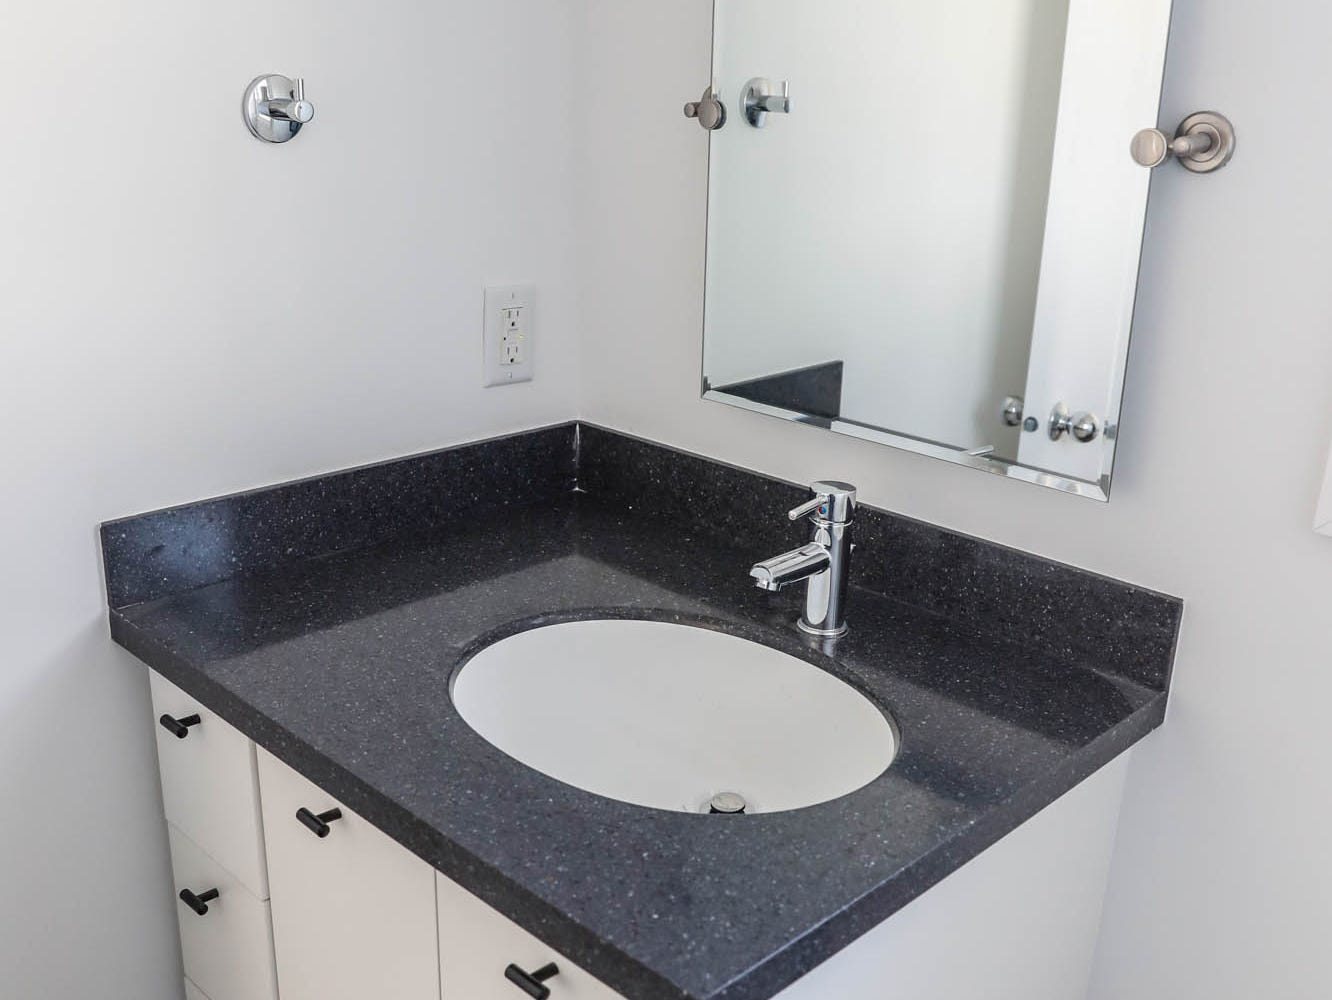 A newly remodeled home on Cruft St., bathroom shown here, affectionally known as the gray house is part of the Big Car Collaborative and Riley Area Development affordable artist home ownership program on the near south side of Indianapolis on Wednesday, March 6, 2019. The renovation of this home was done by Axis Architecture and Big Car board member Ursula David. The goal of the Artist and Public Life Residency (APLR), will be to provide artists with home ownership while they work and collaborate with the greater community.